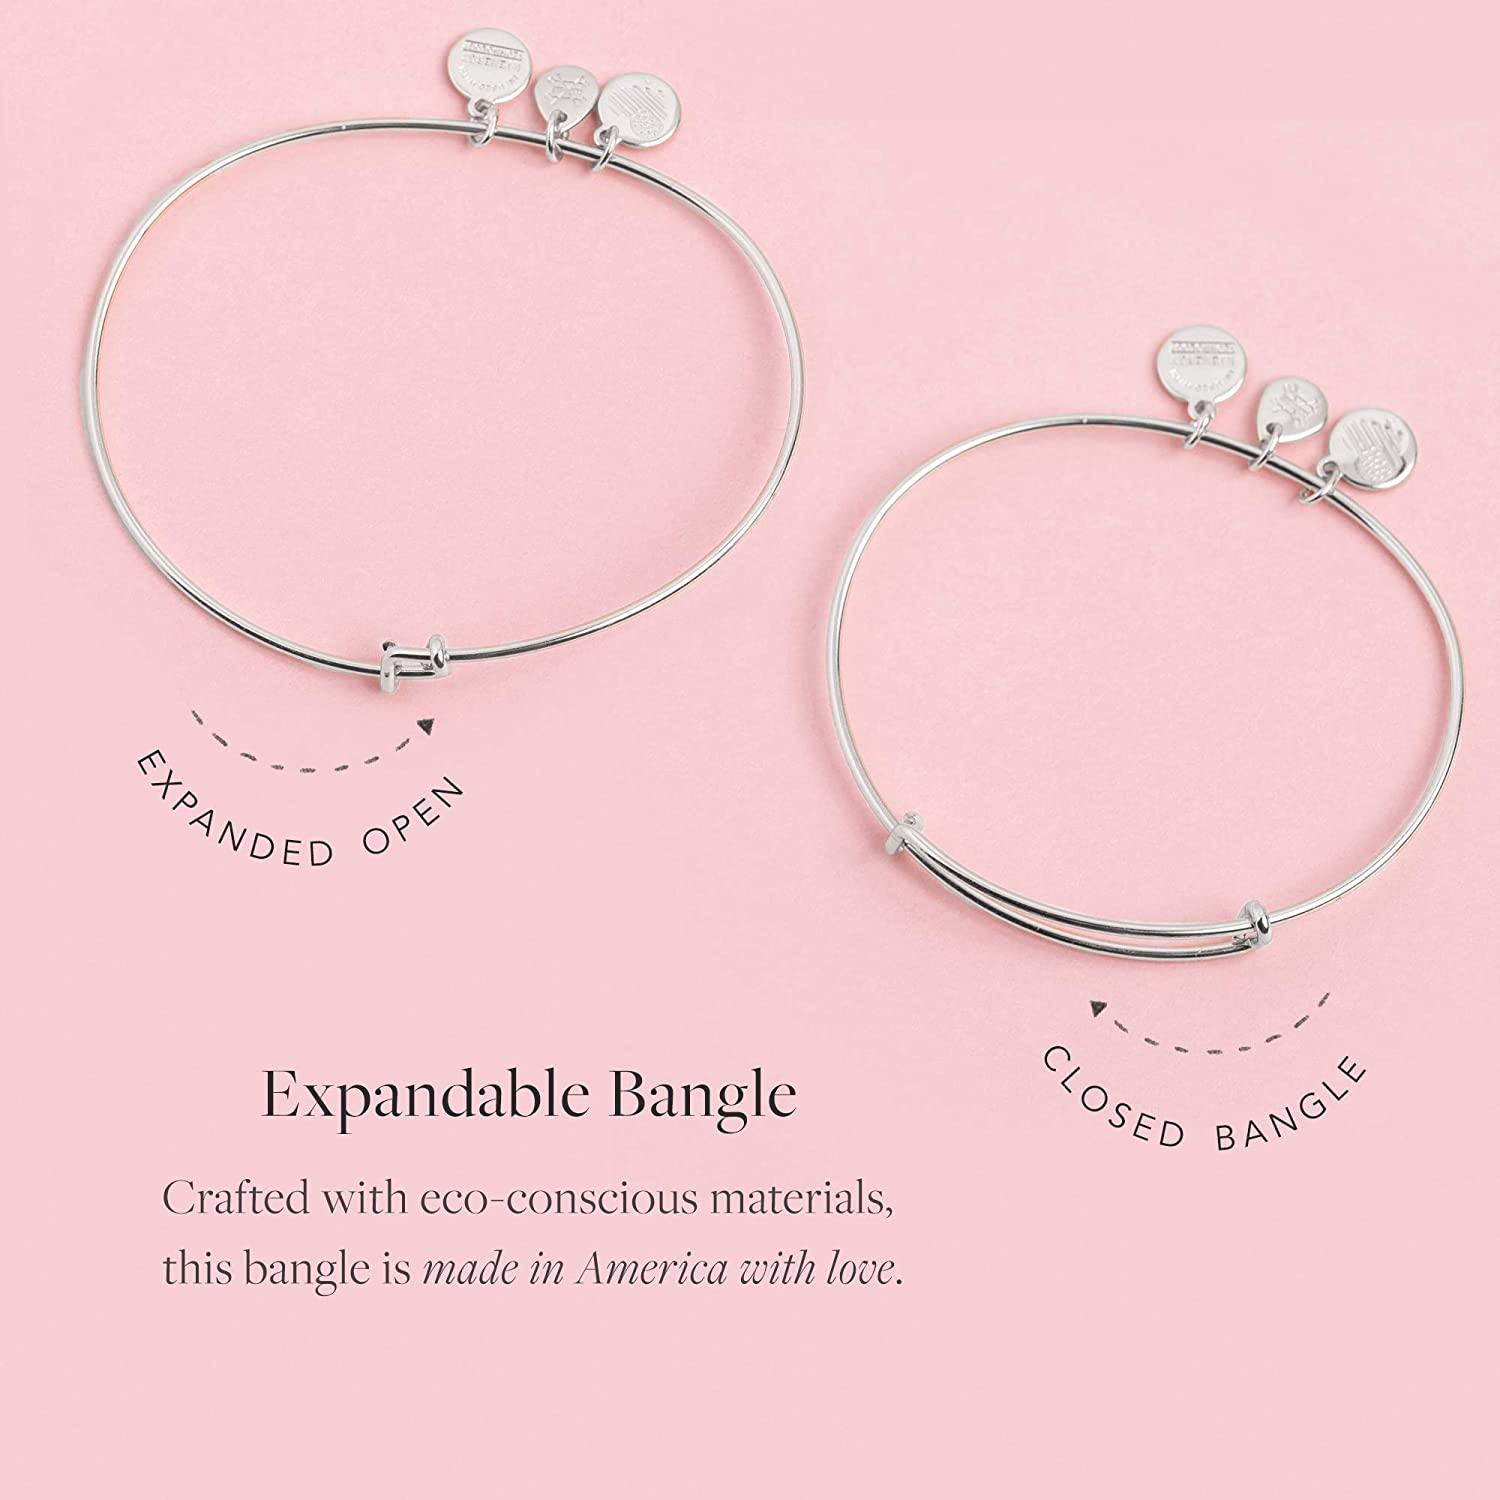 Alex and Ani Soul Sister Expandable Bangle Bracelet for Women, Friendship Inscription Charm, Rafaelian Silver Finish, 2 to 3.5 in: Jewelry